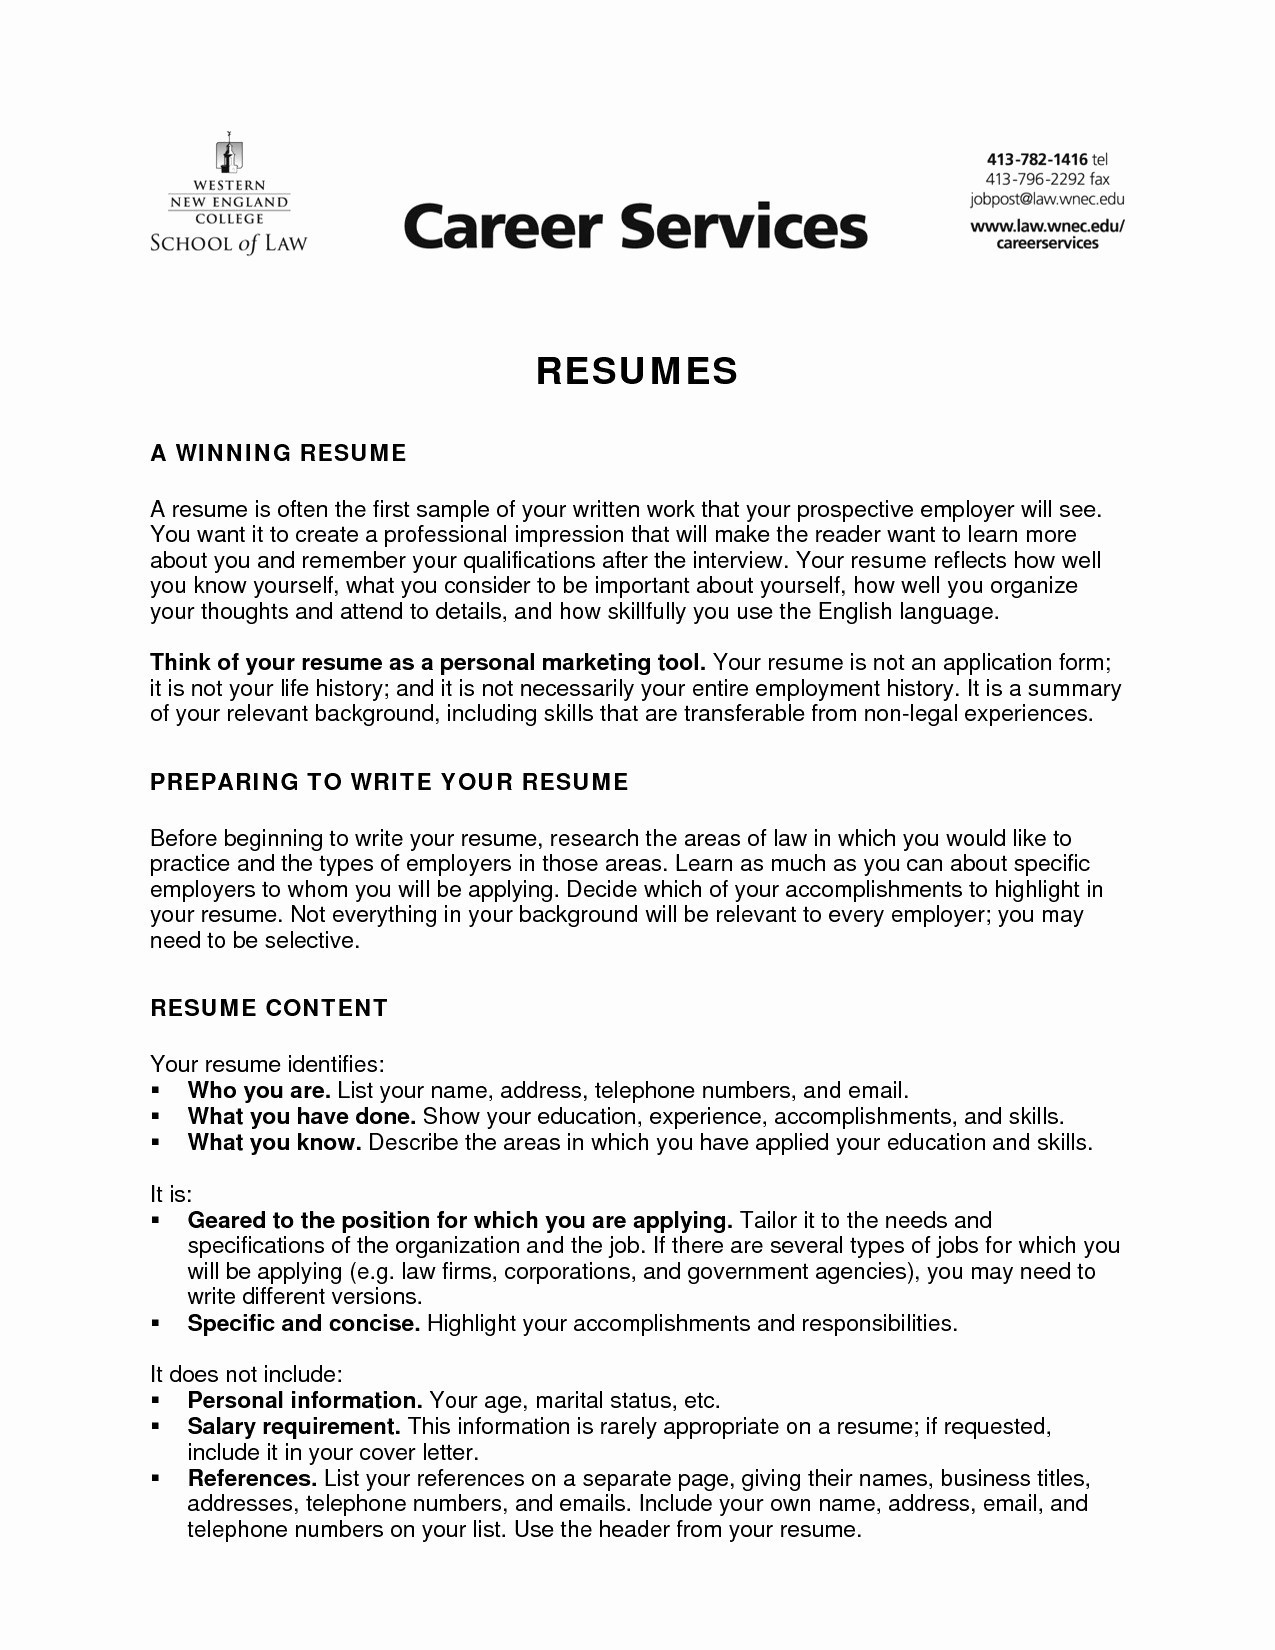 Audit Reconsideration Letter Template - Staggering Auto Mechanic Cover Letter